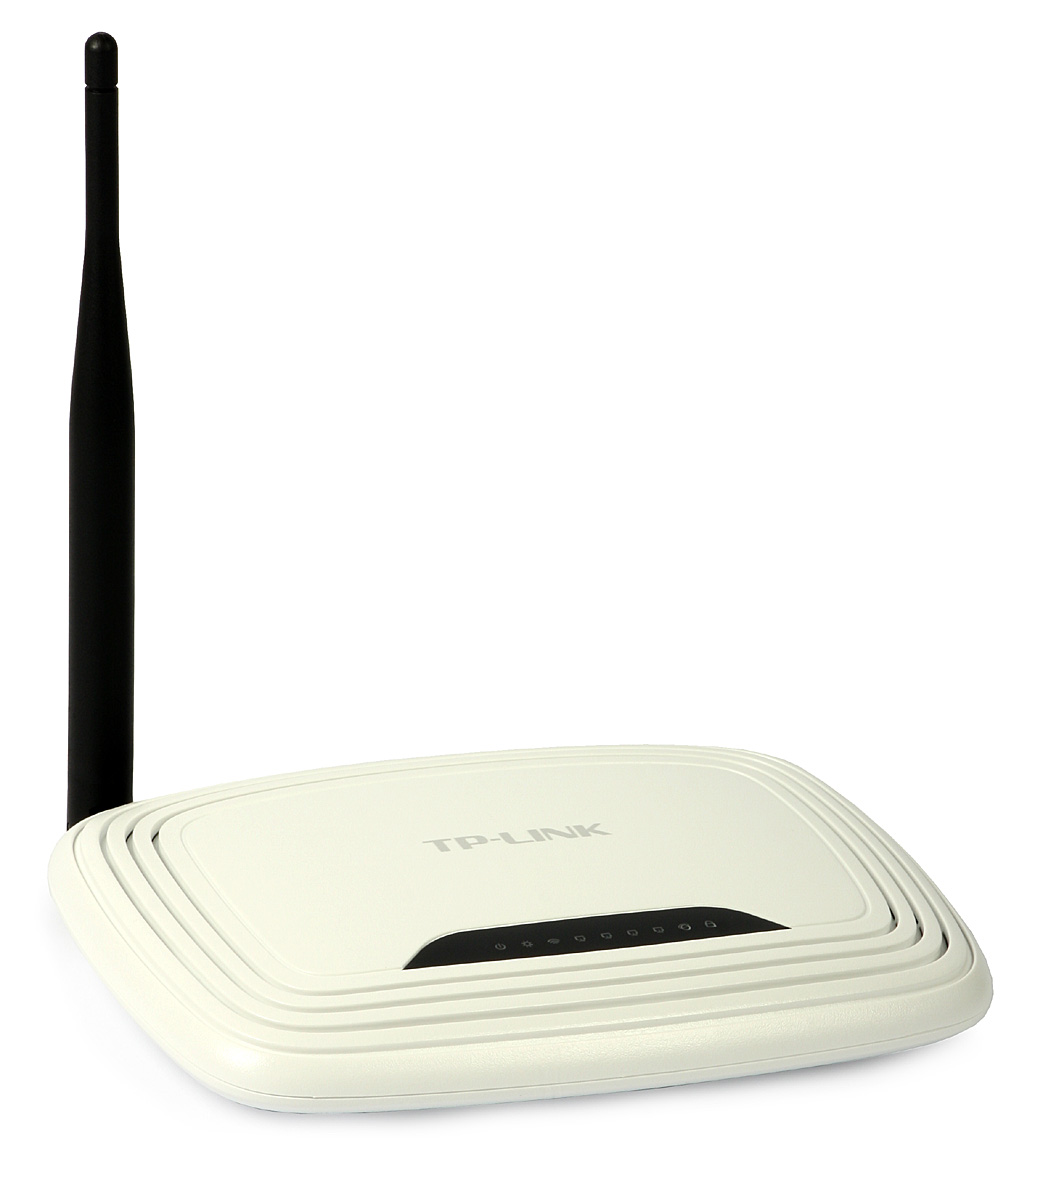 Access Point: TP-Link TL-WR740N (w  router, 4p-switch, 150Mb